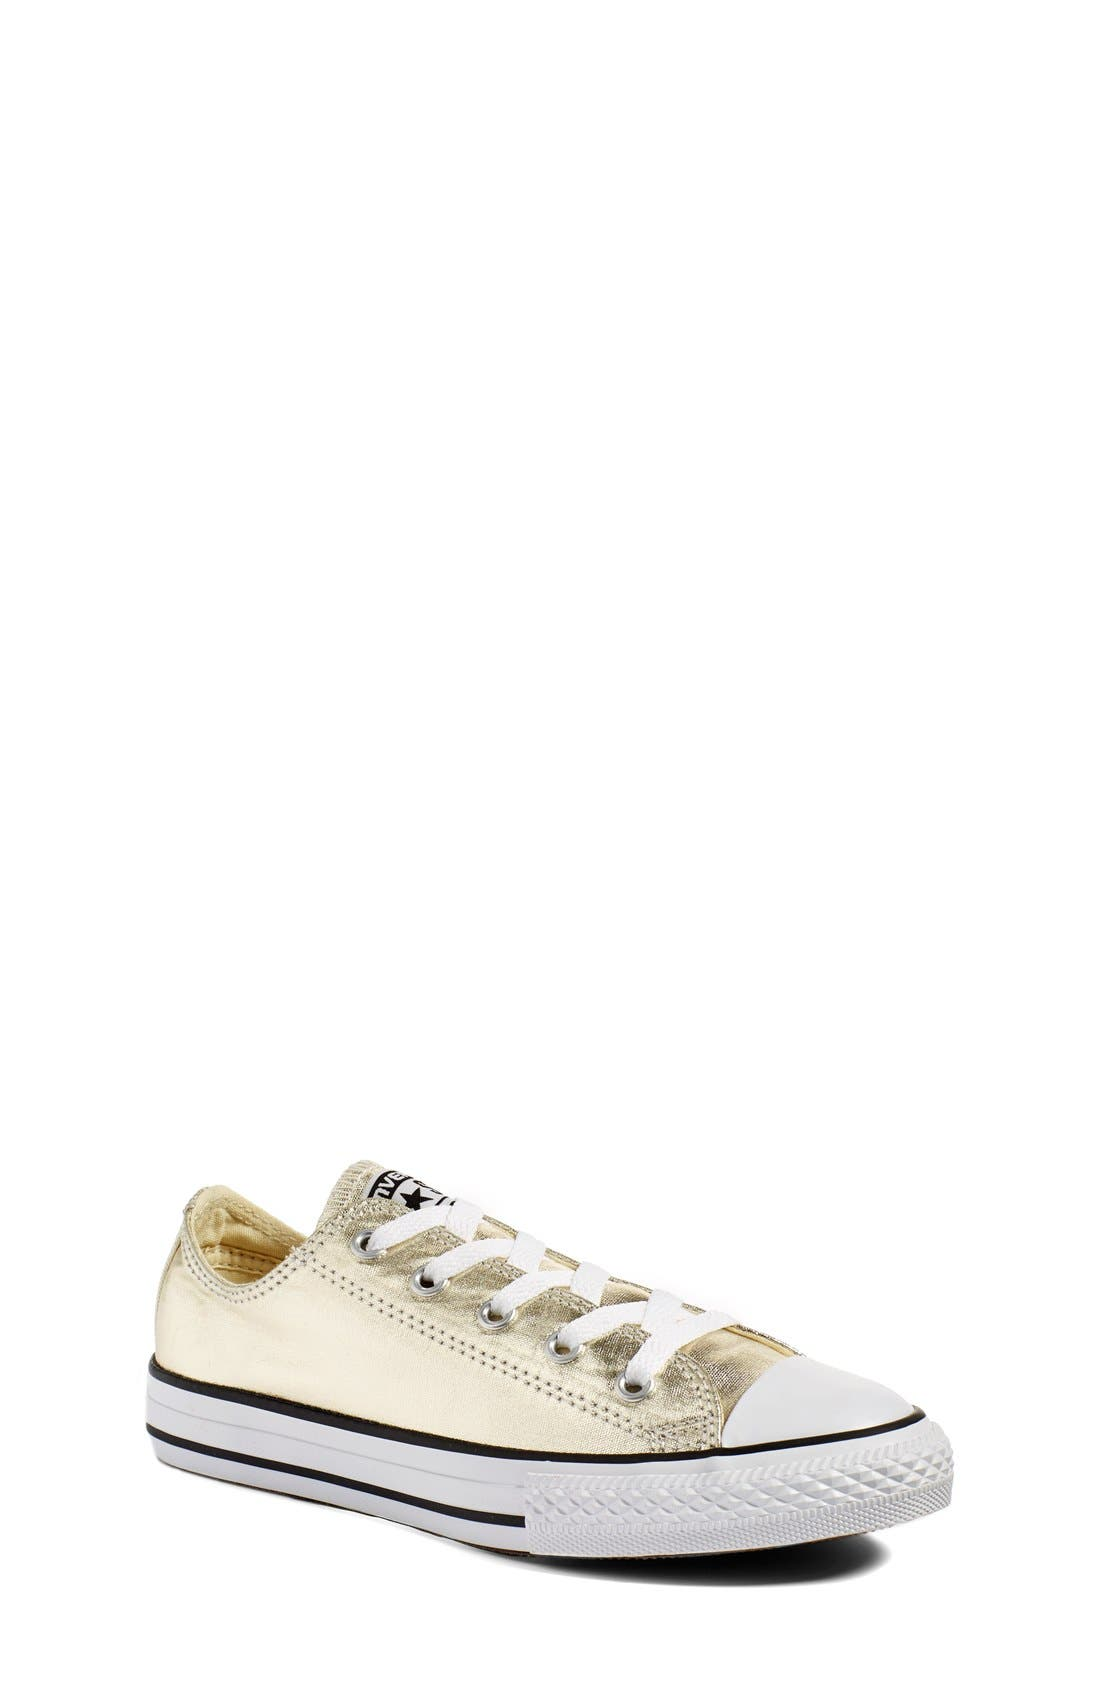 Chuck Taylor<sup>®</sup> All Star<sup>®</sup> Metallic Sneaker,                             Main thumbnail 1, color,                             LIGHT GOLD/ WHITE